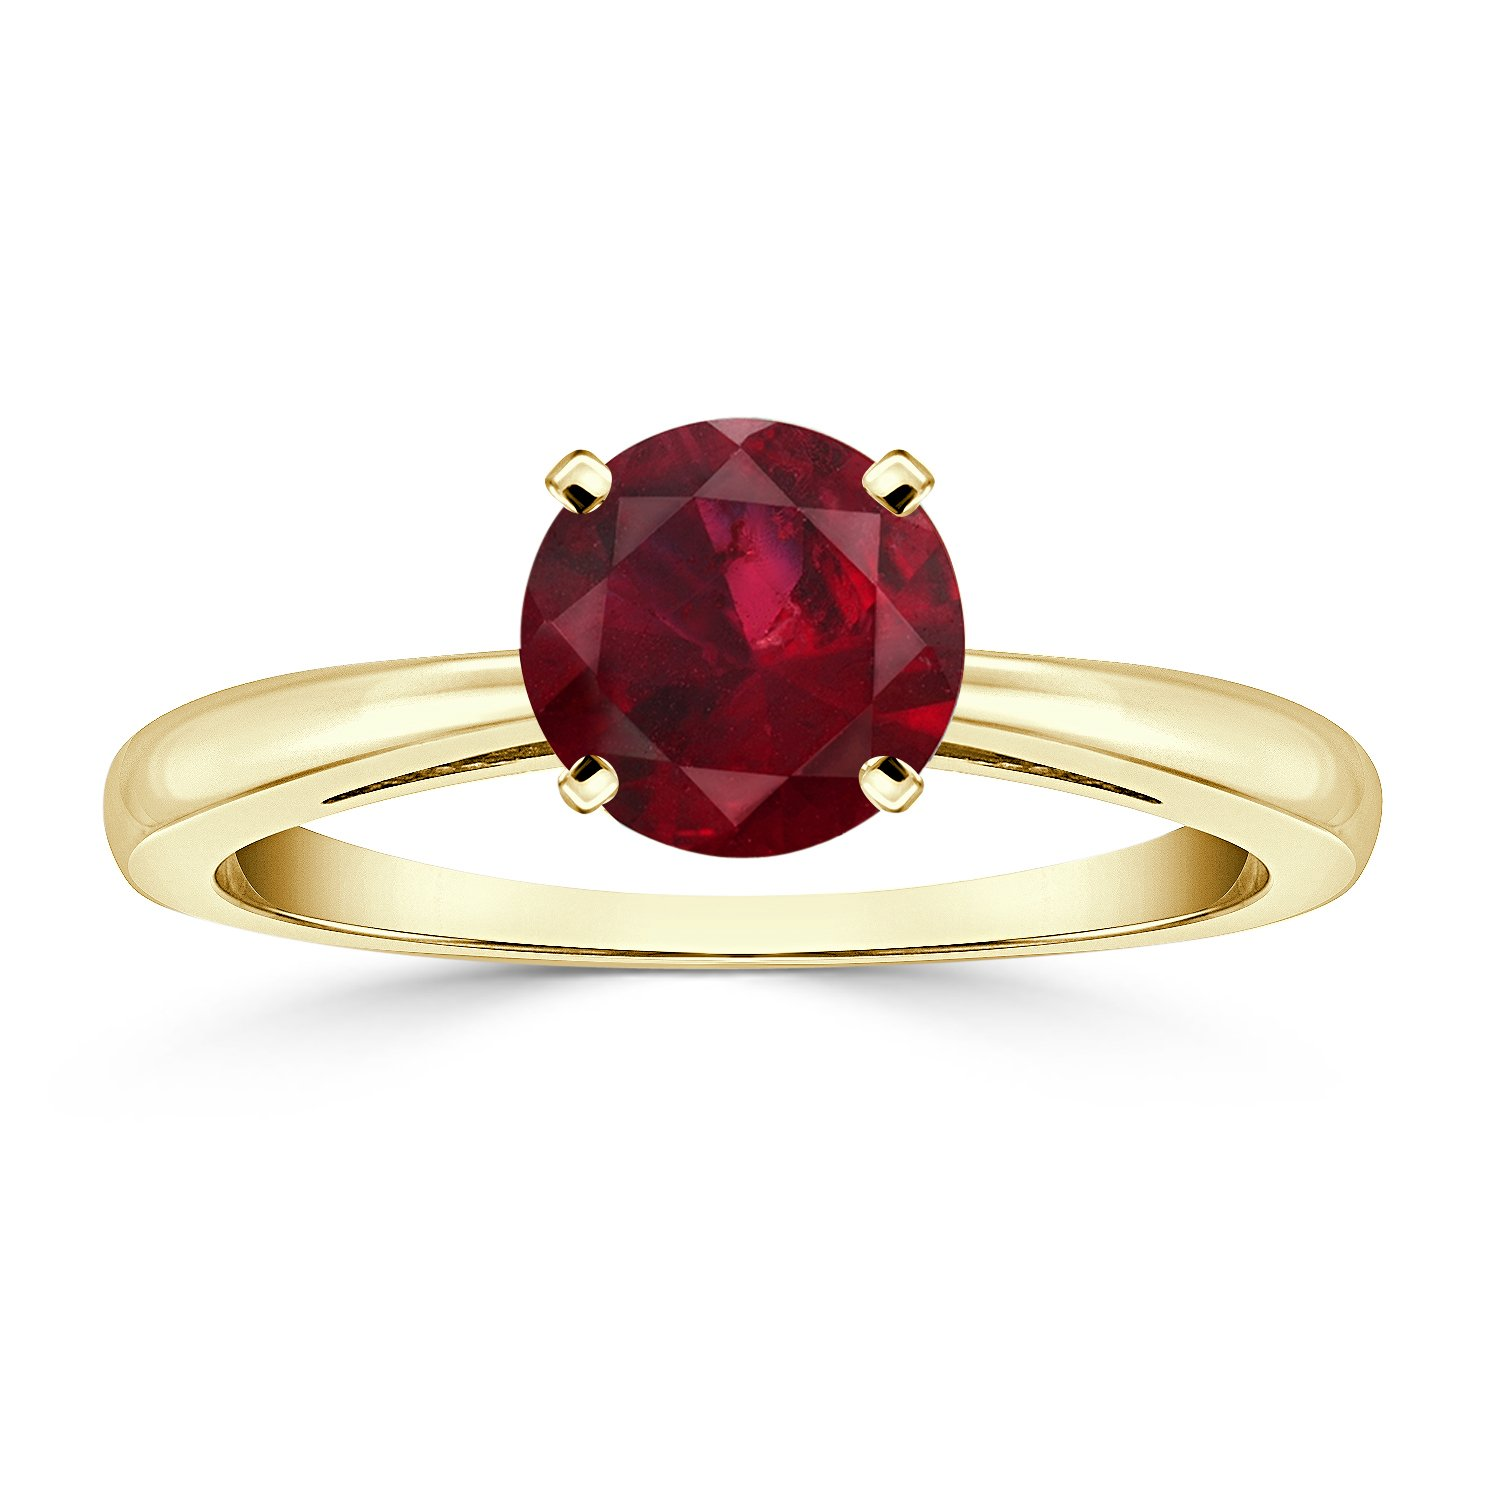 18K Yellow Gold Round-Cut Ruby Gemstone Solitaire Engagement Ring 4 prong (1 cttw)Size 8.5